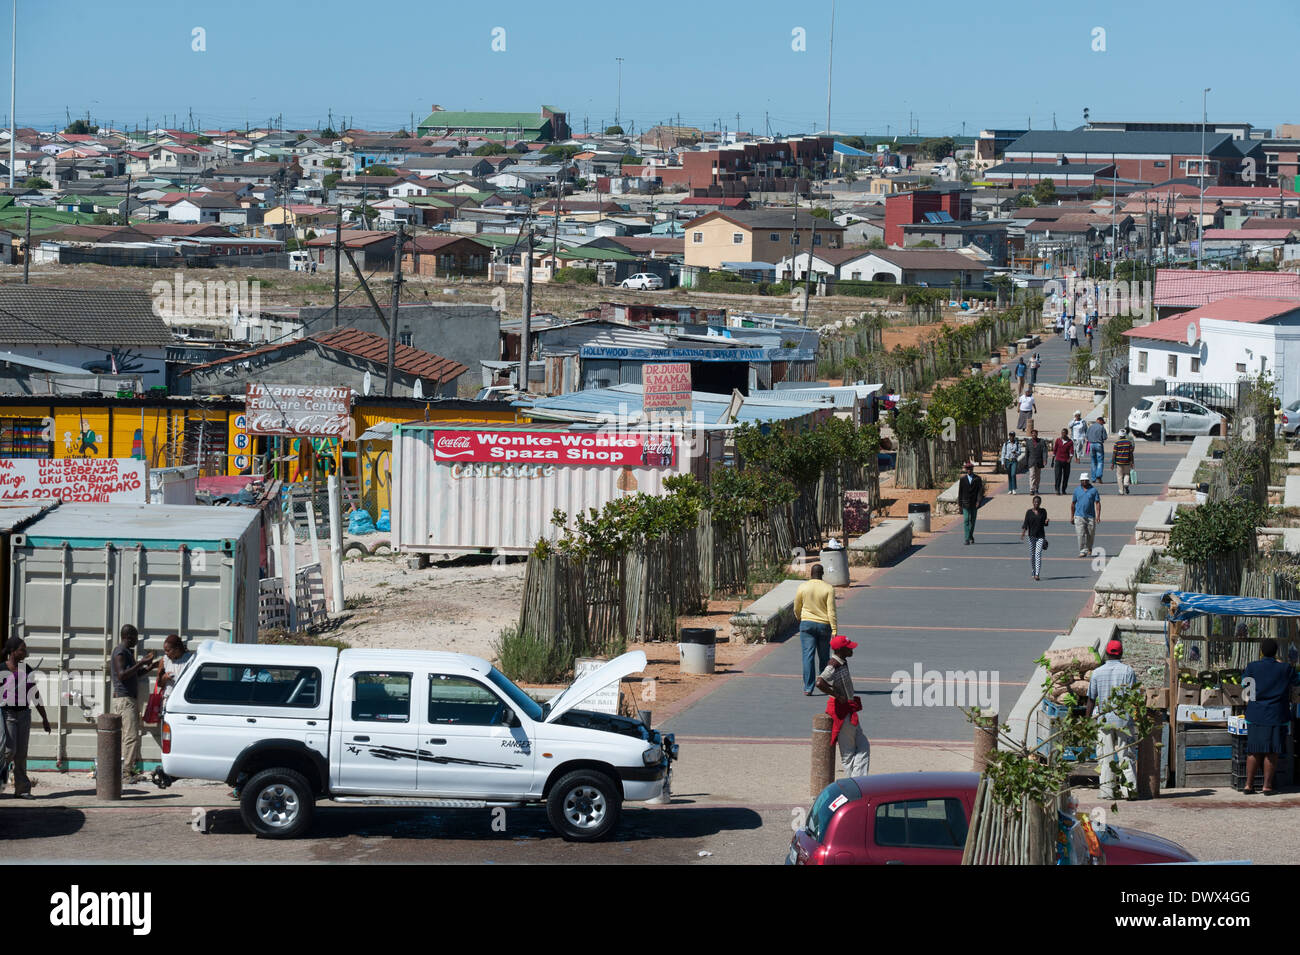 Panoramic view over a street and houses in Khayelitsha, Cape Town, Western Cape, South Africa - Stock Image